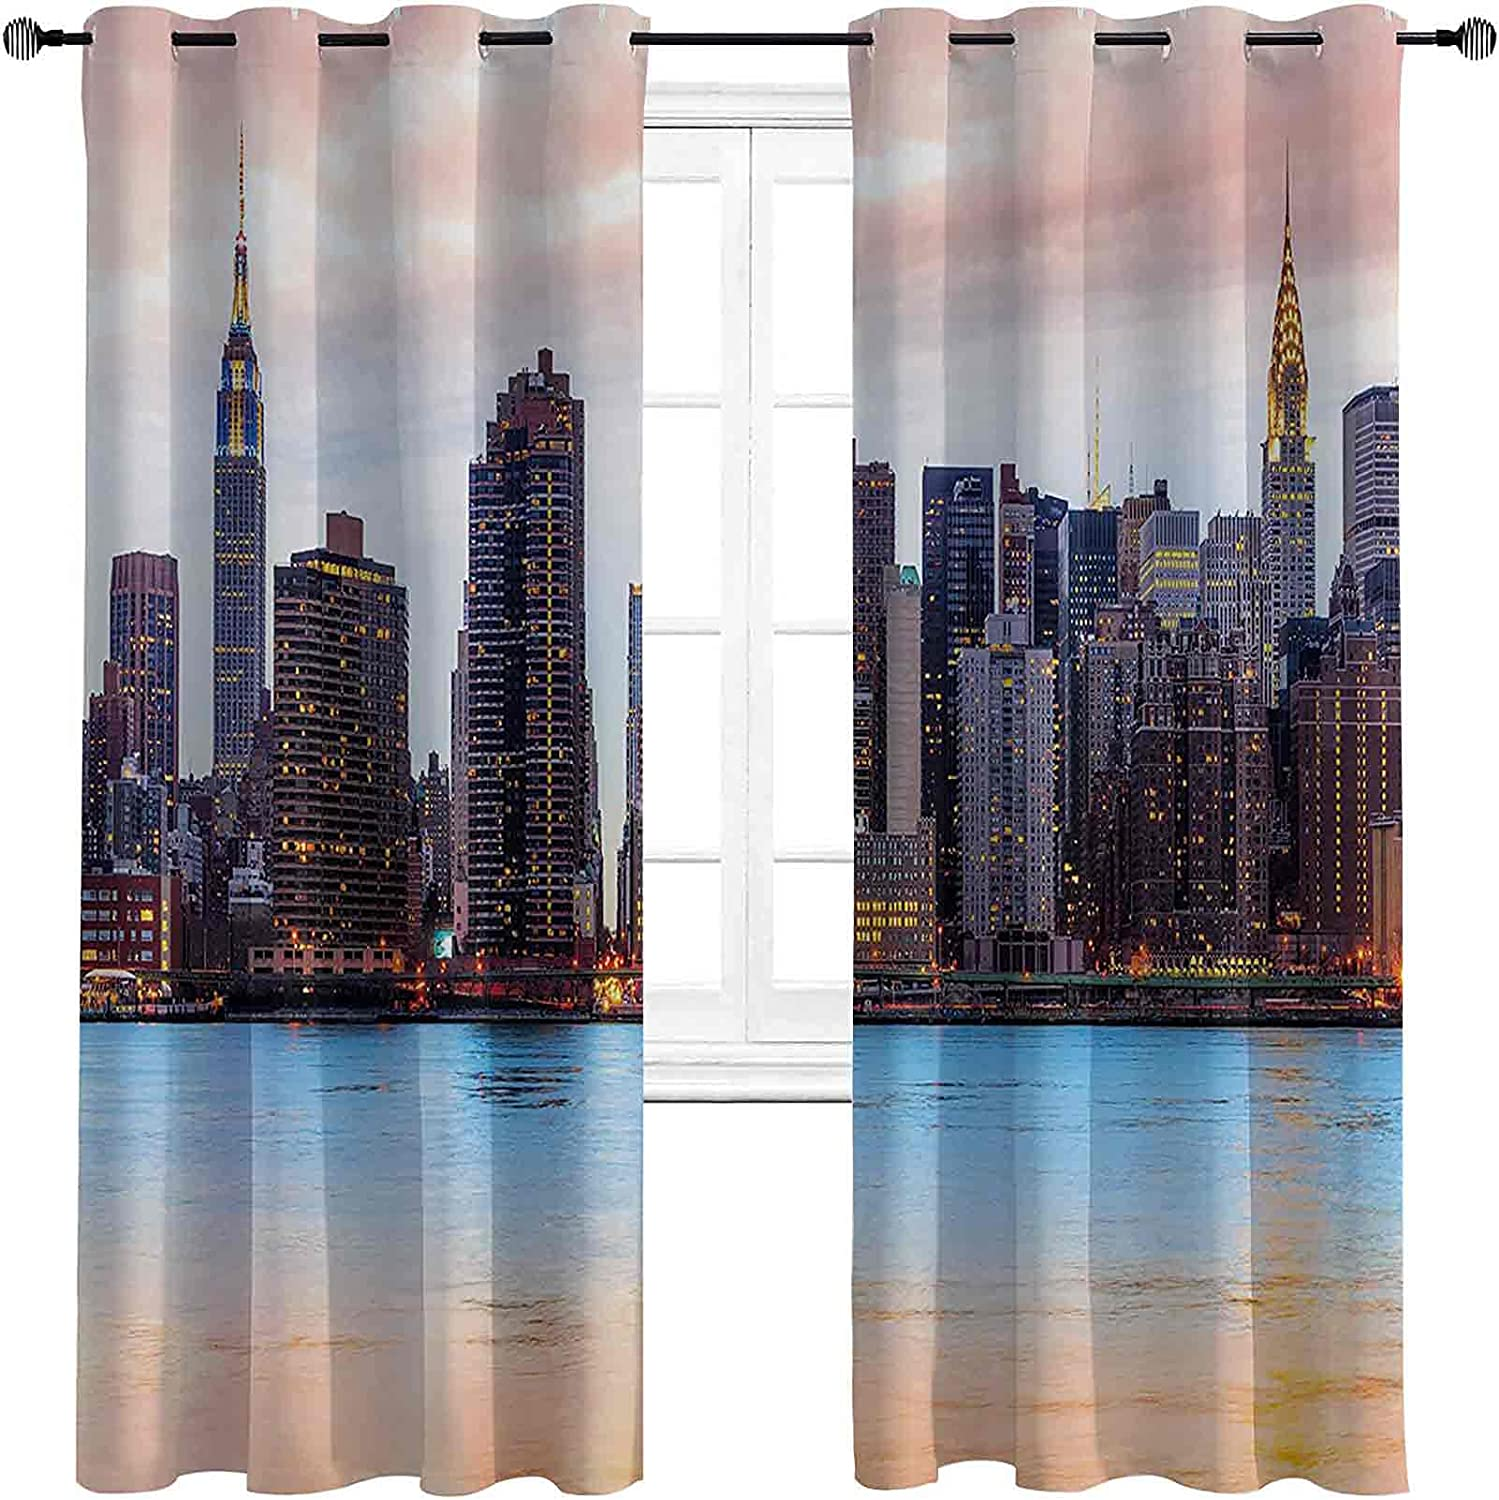 New York Shading Max 66% OFF Insulated Curtain Midtown products world's highest quality popular Skyline Vi Manhattan